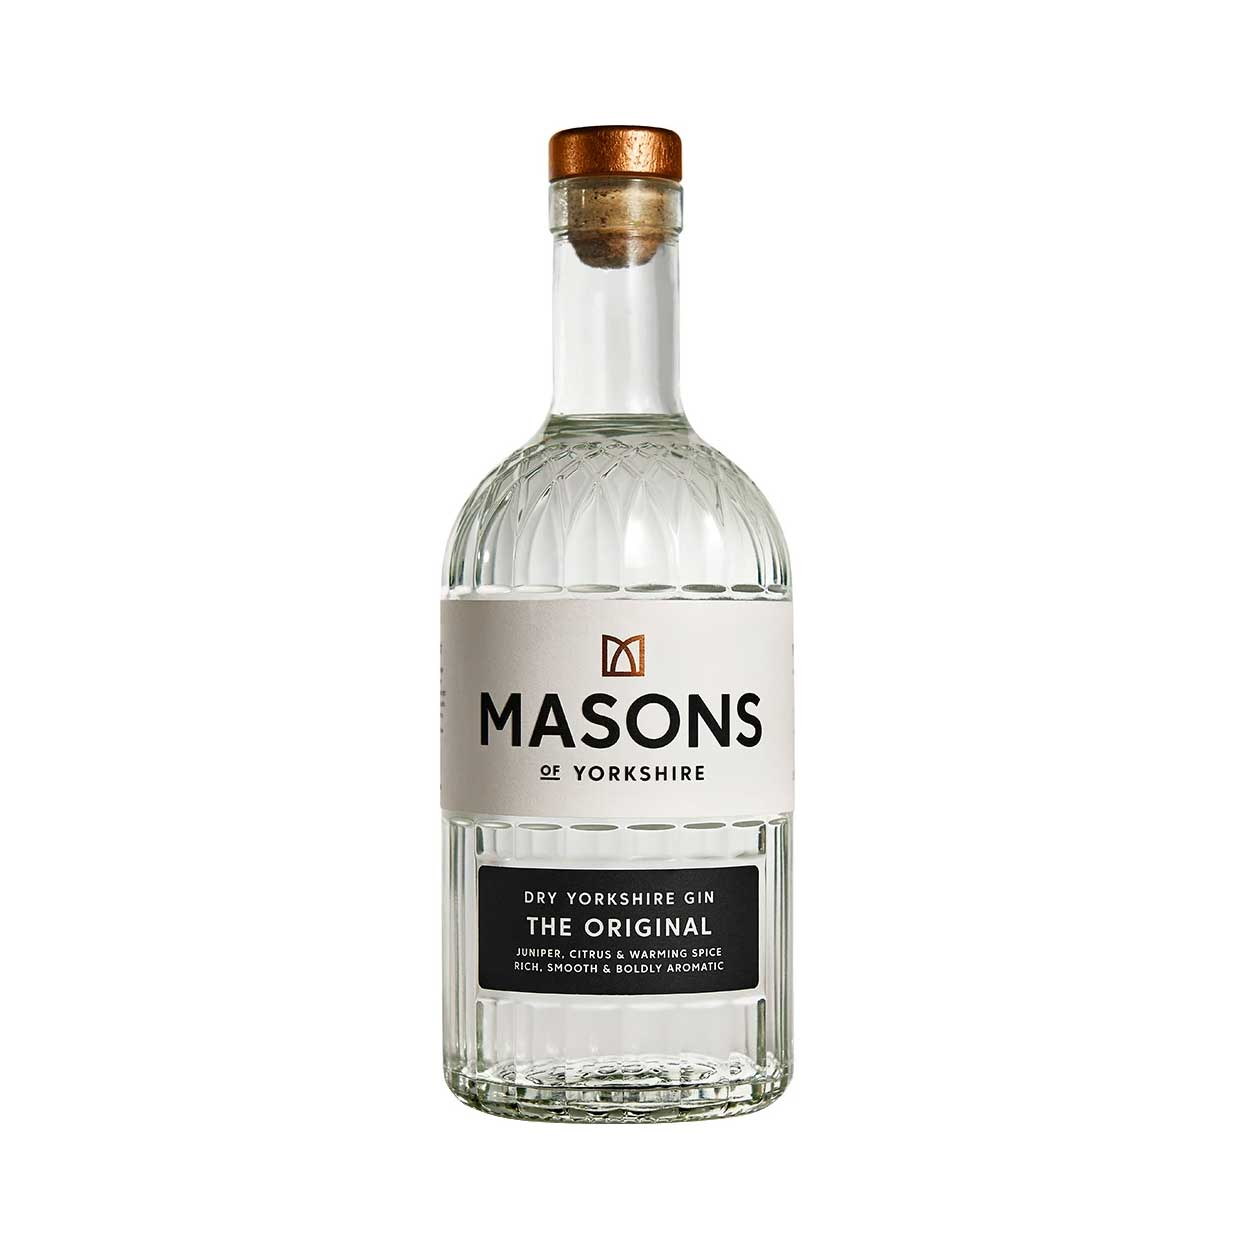 Masons The Original Yorkshire Gin